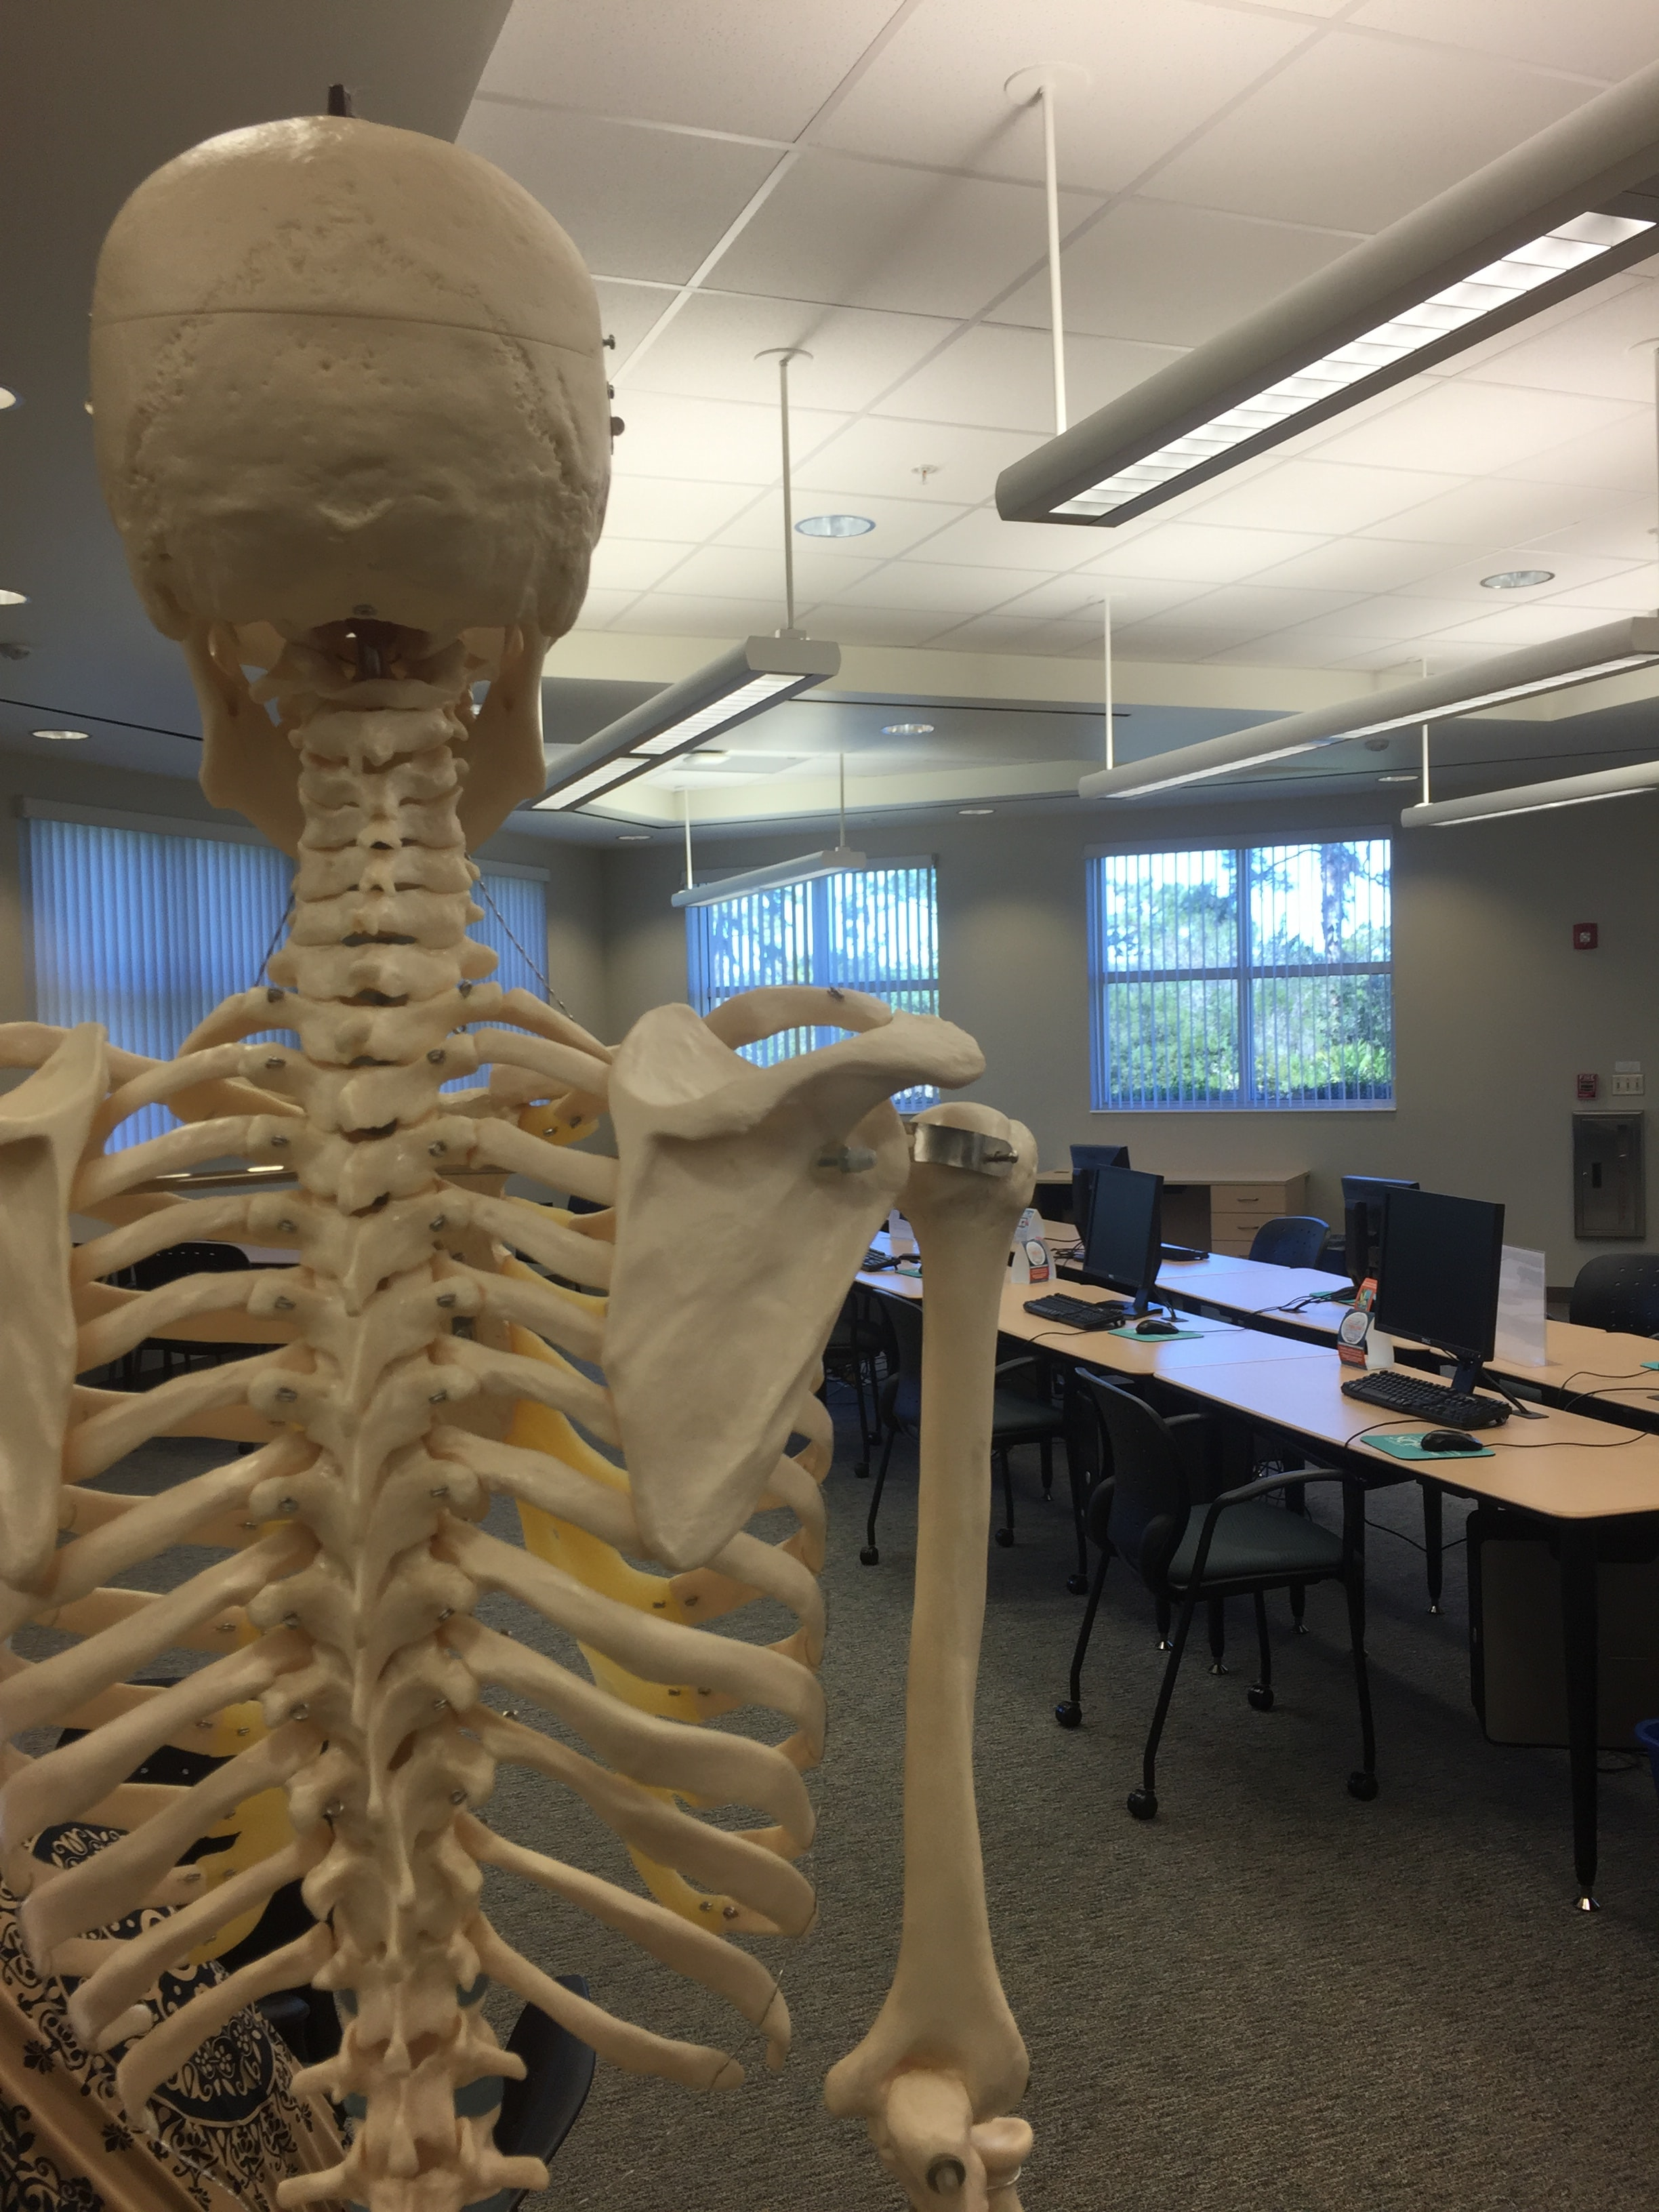 A skeleton in a classroom.